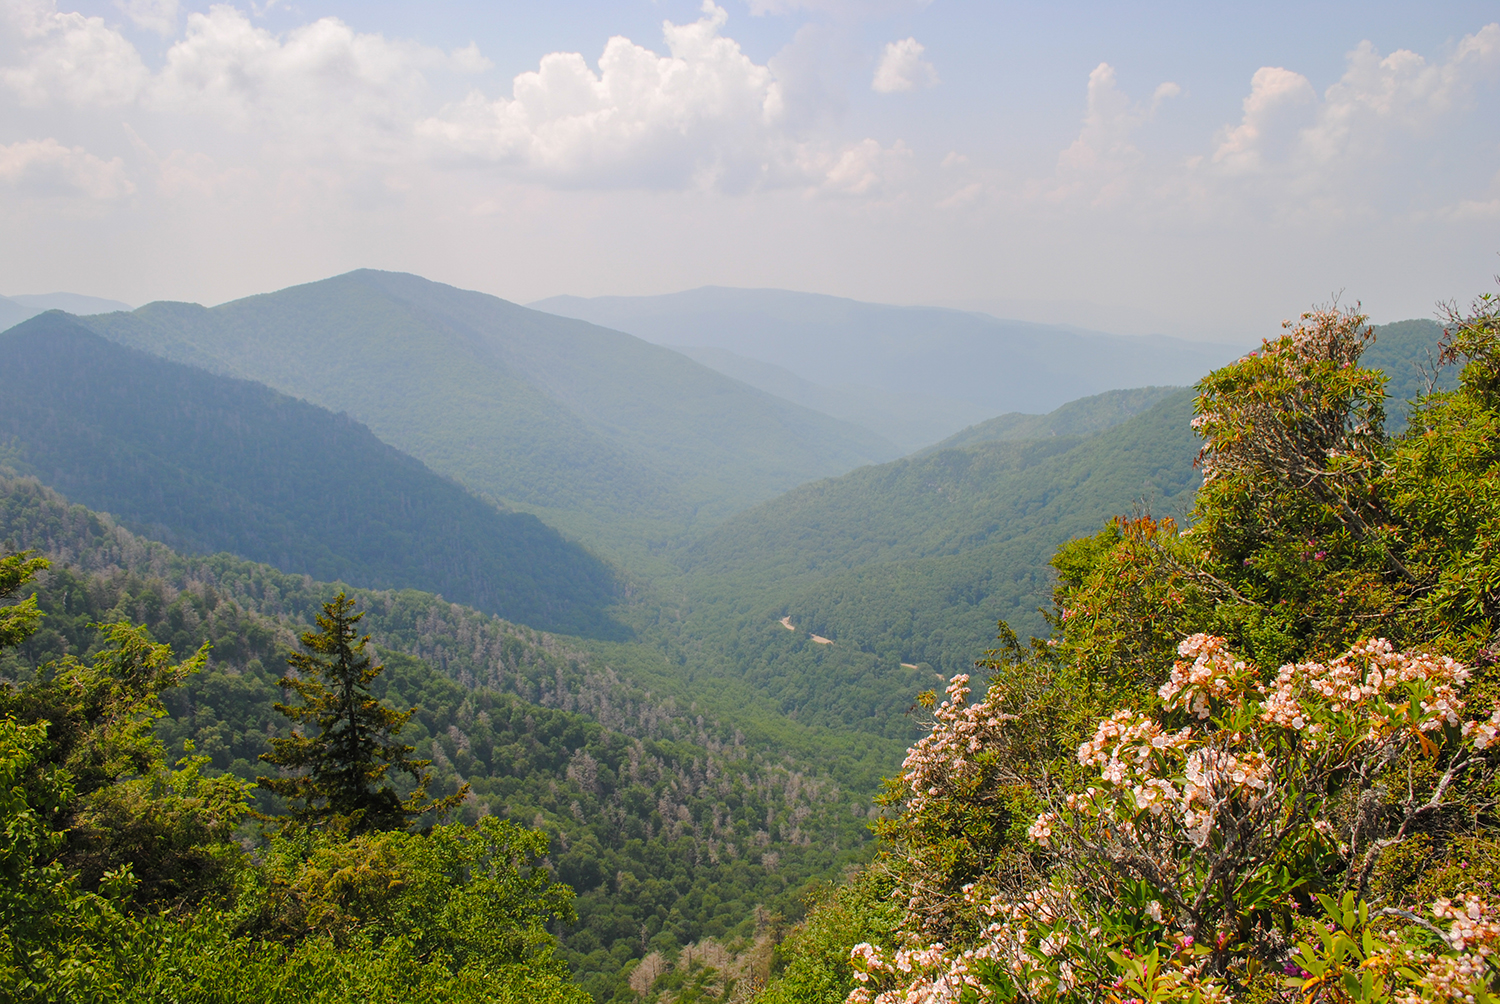 Looking down from Chimney Tops. The Ericaceous  Kalmia  (mountain laurel) on the right are hints of other blooming plants to come.